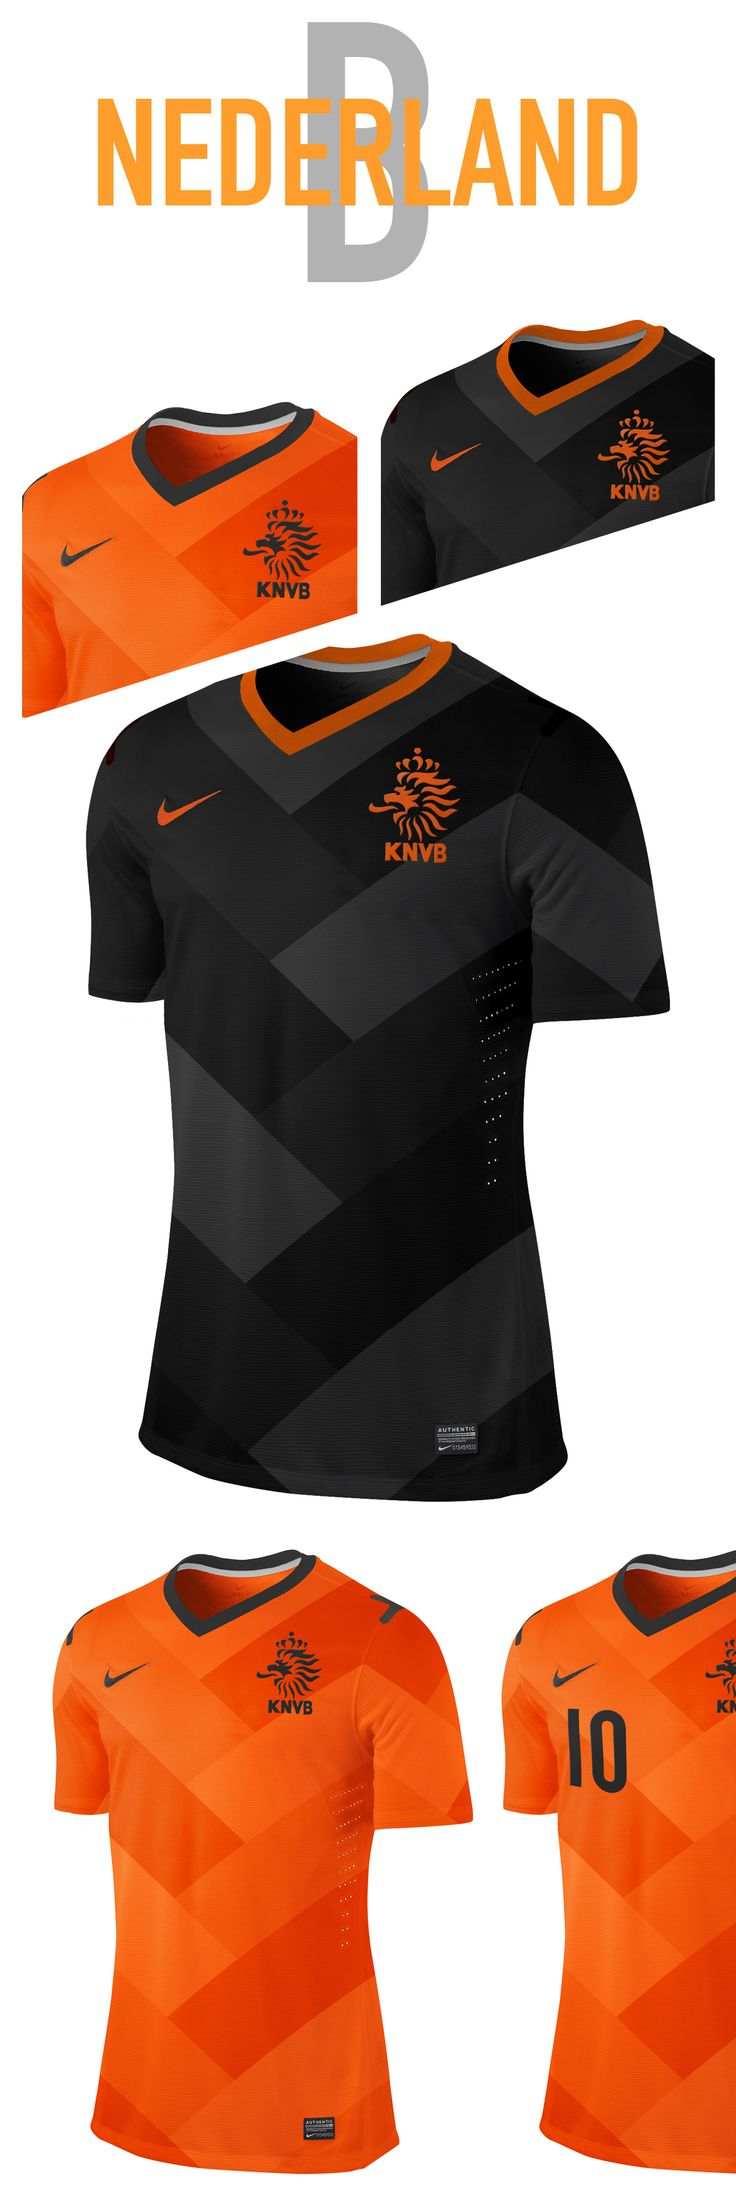 Design your own t-shirt front and back - The World Cup 2014 Teams Concepts For Group C